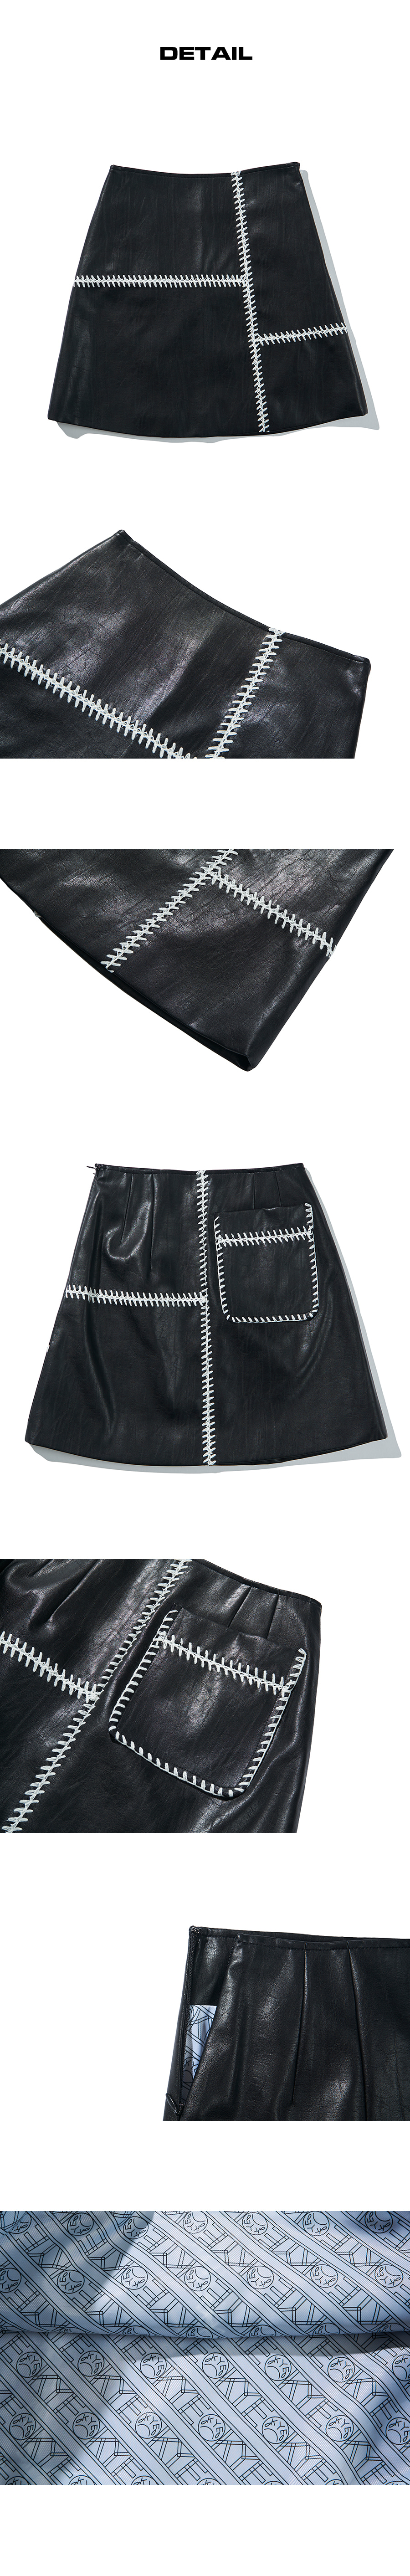 카이(KYE) FEATHER STITCH DETAIL FAUX-LEATHER MINI SKIRT (KYTZ7SKR01W)